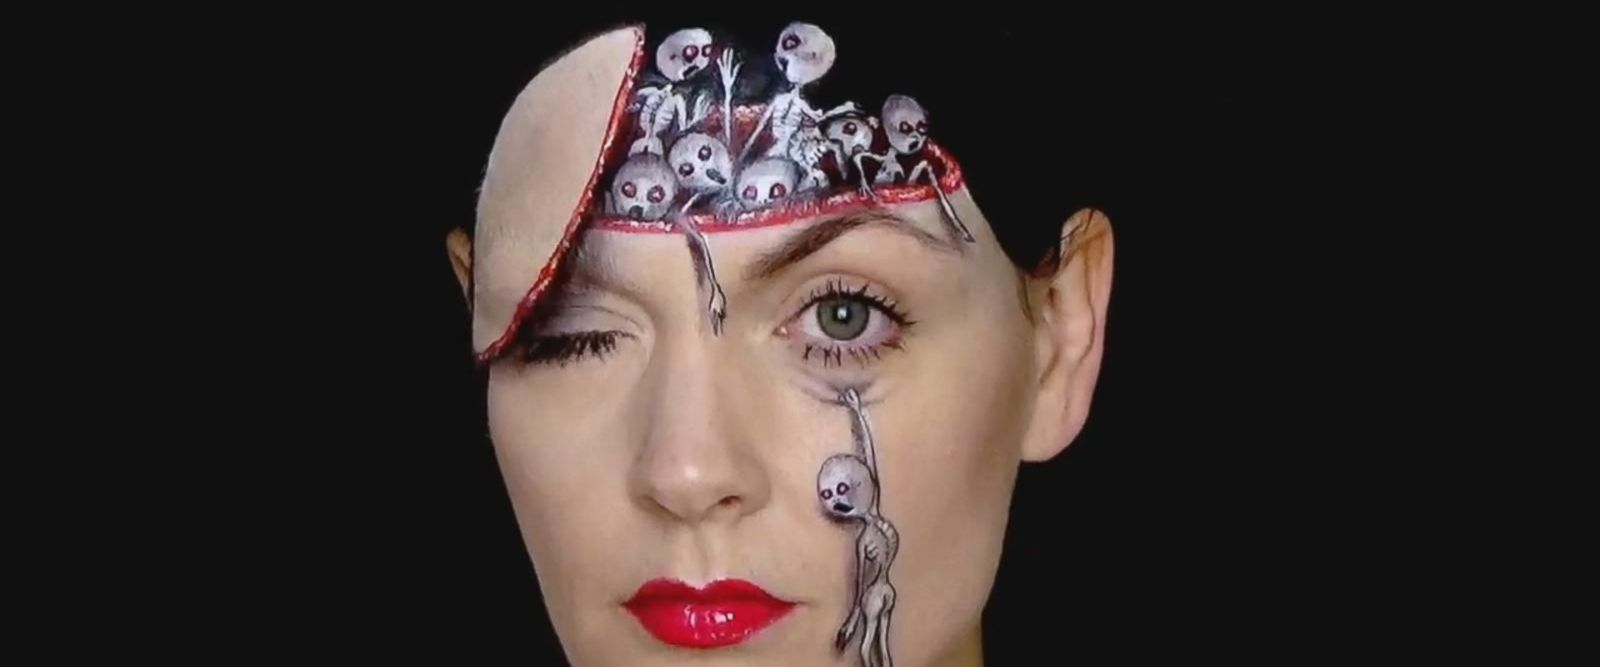 """Sammy Staines of Dorset, England, said she loves doing monster makeovers because """"there is no limit to what you can create with them."""""""